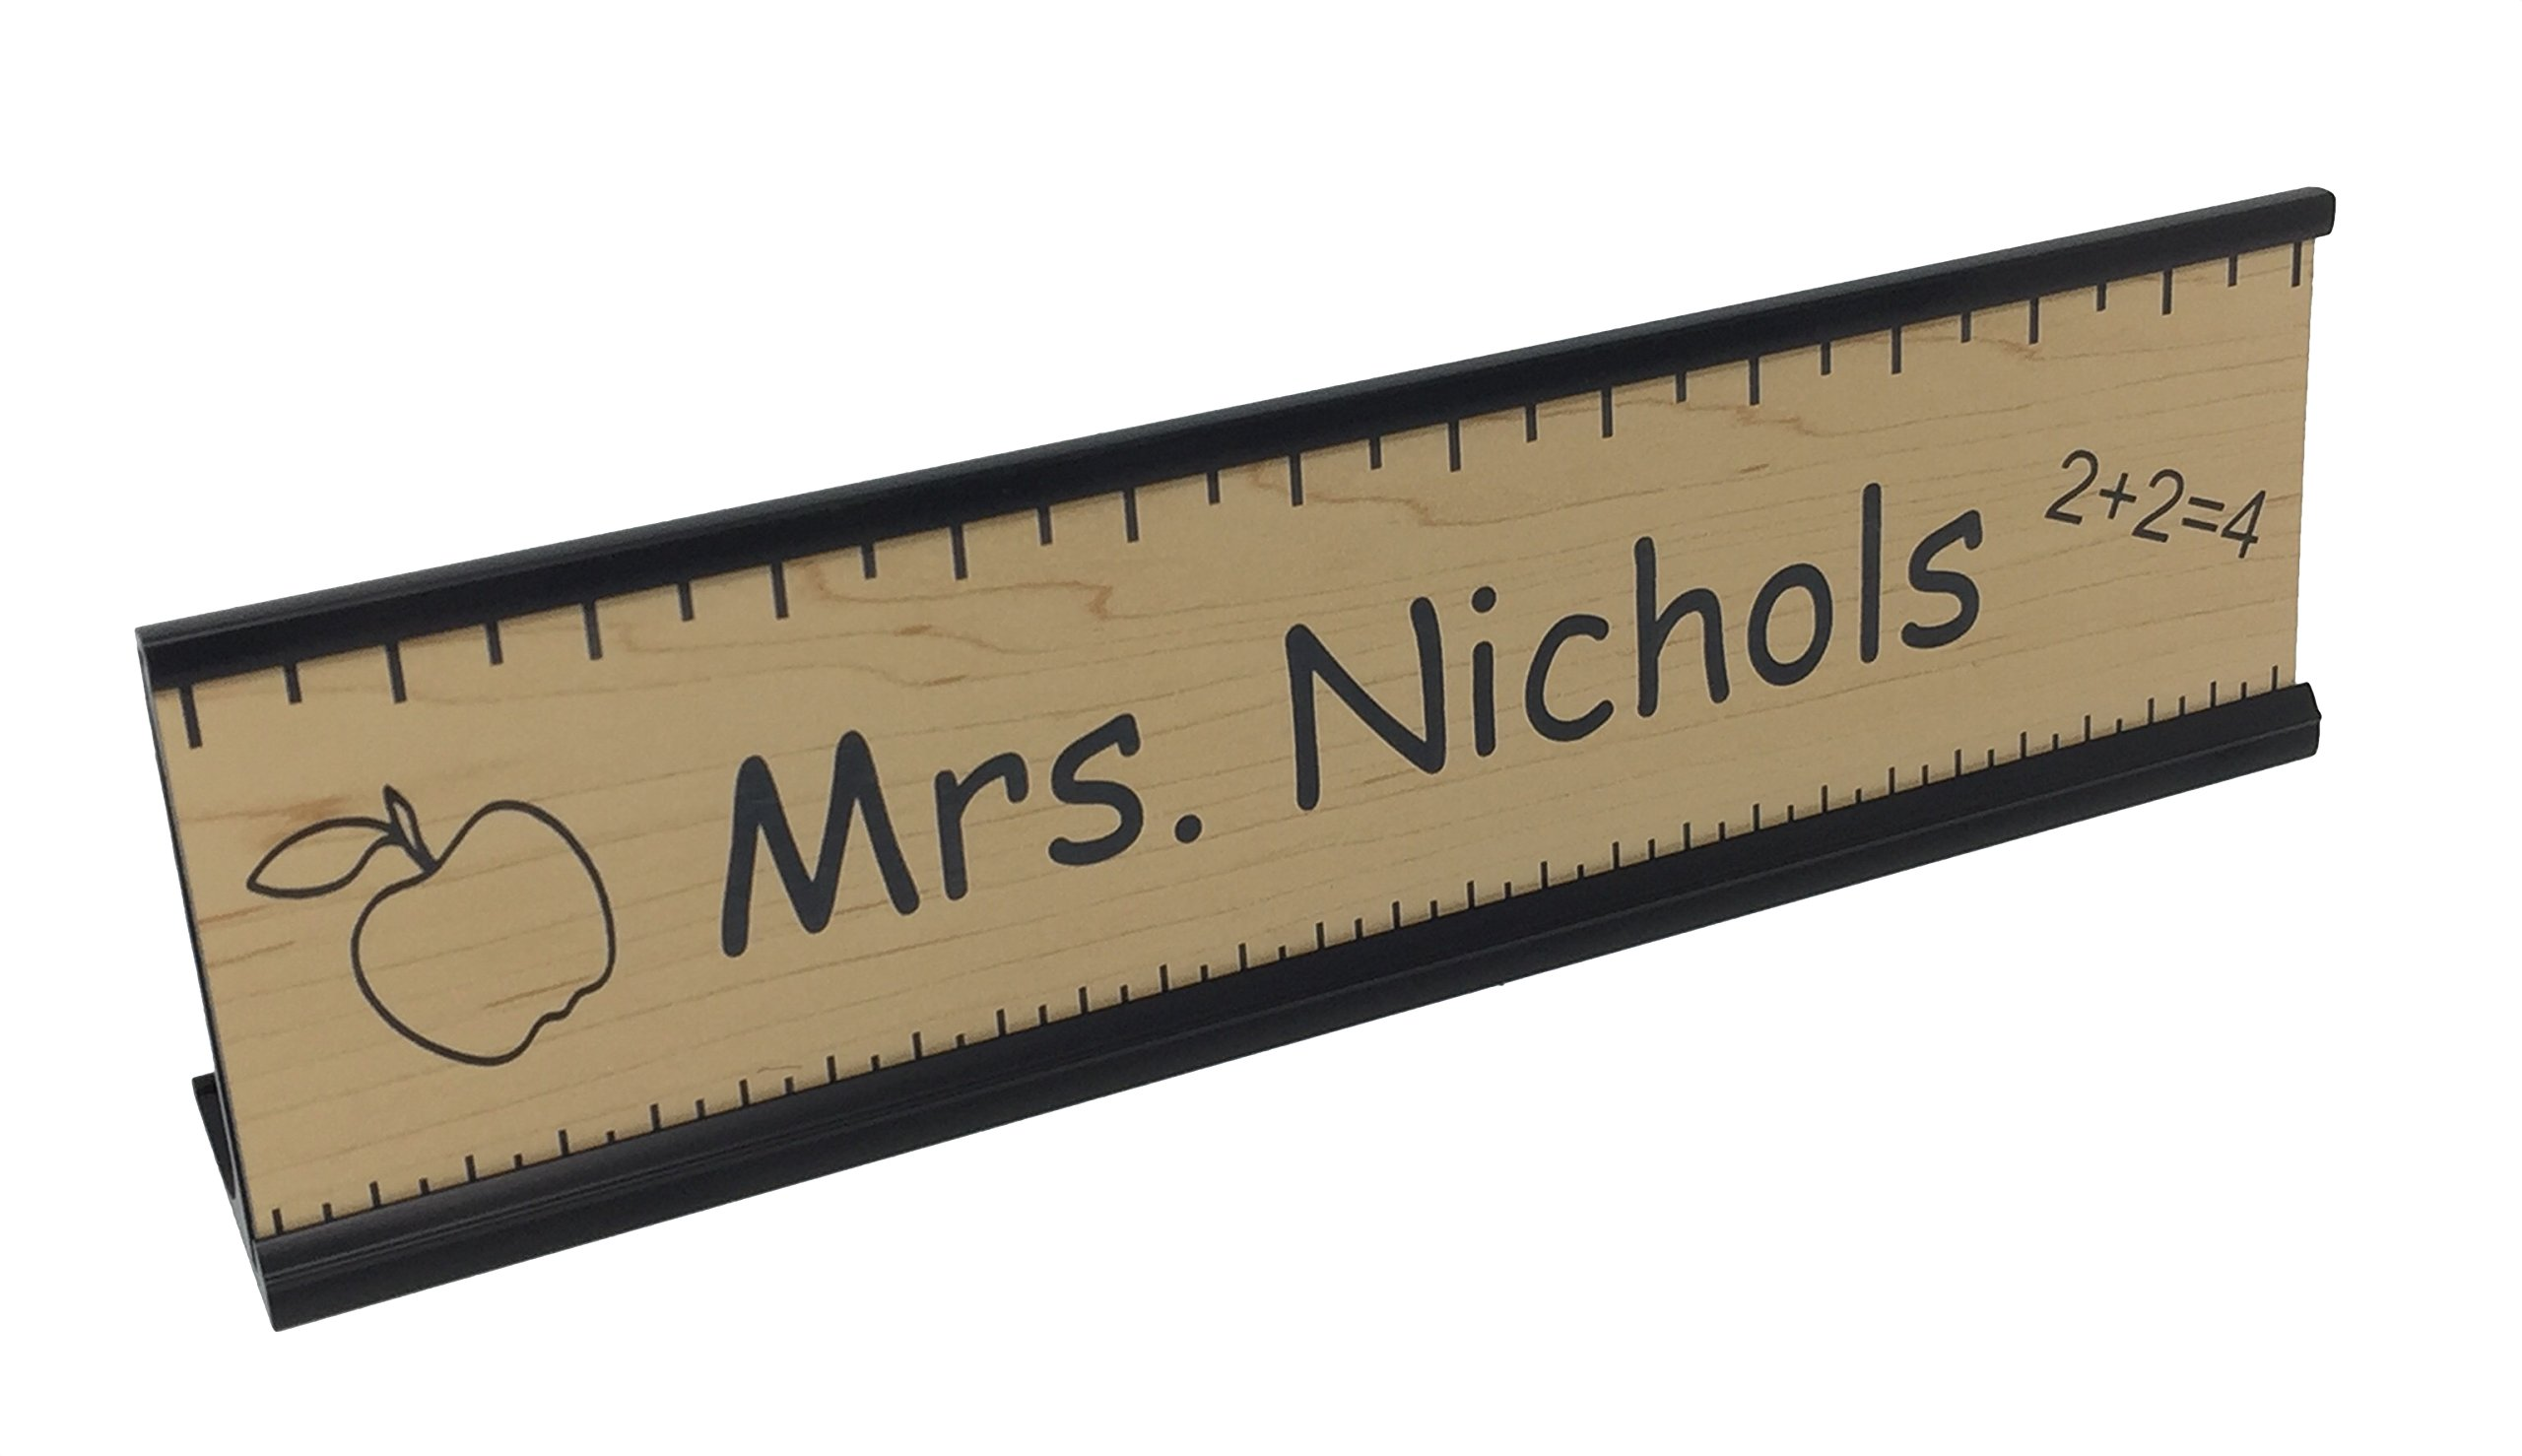 Teacher Office Desk Name Plate or Door Sign with or w/o holder - Free Engraving - Great Gift for School Teacher! (With Gold Wall Holder)